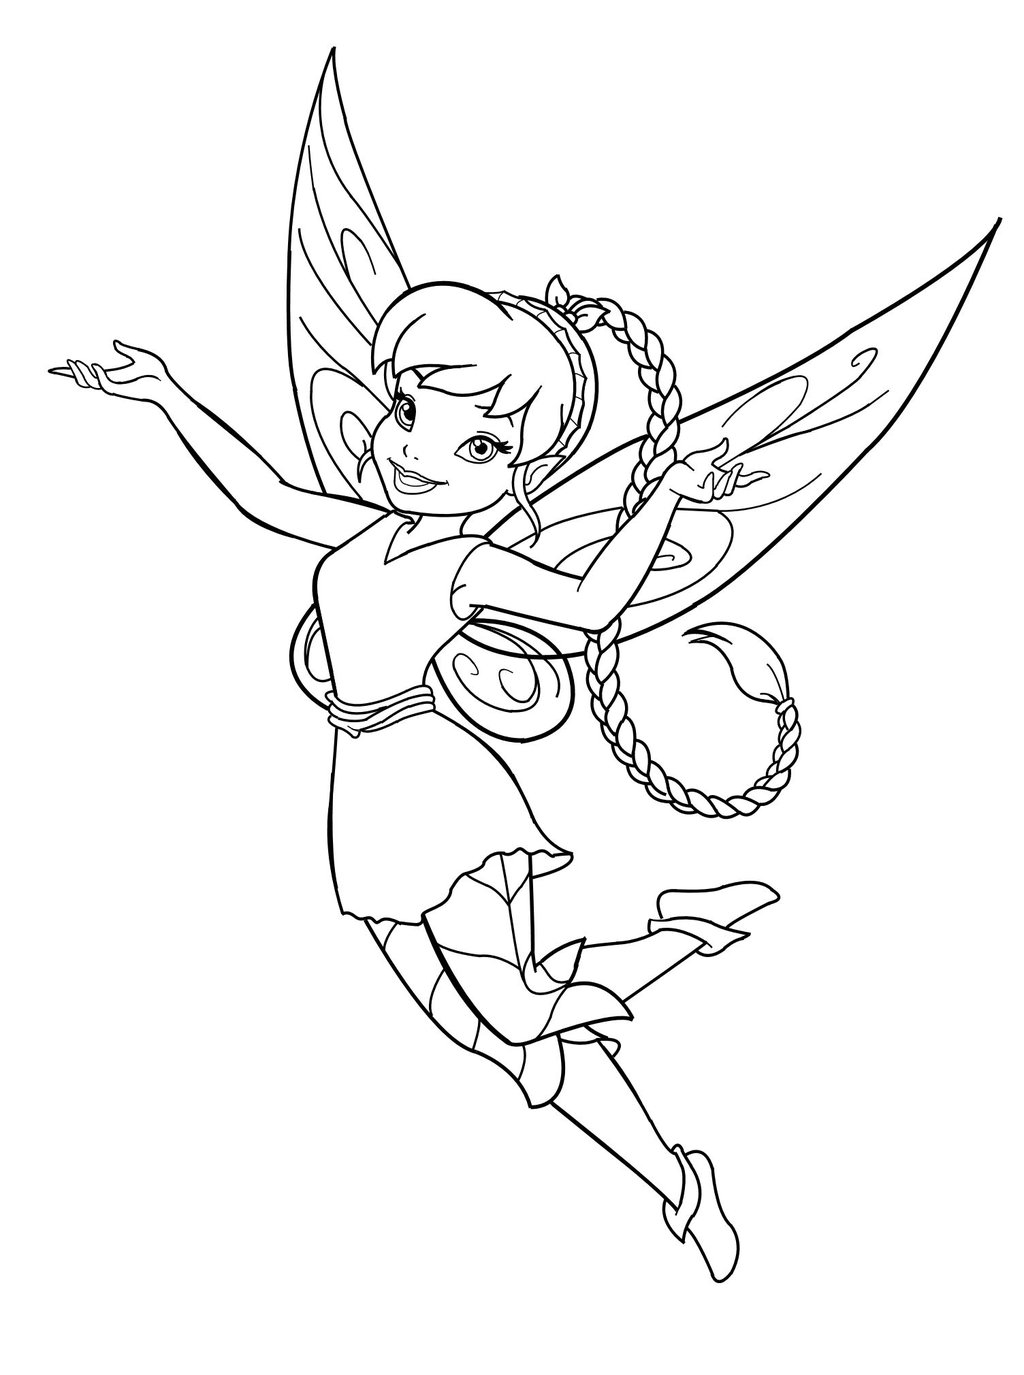 disney-fairies coloring pages for kids,printable,coloring pages